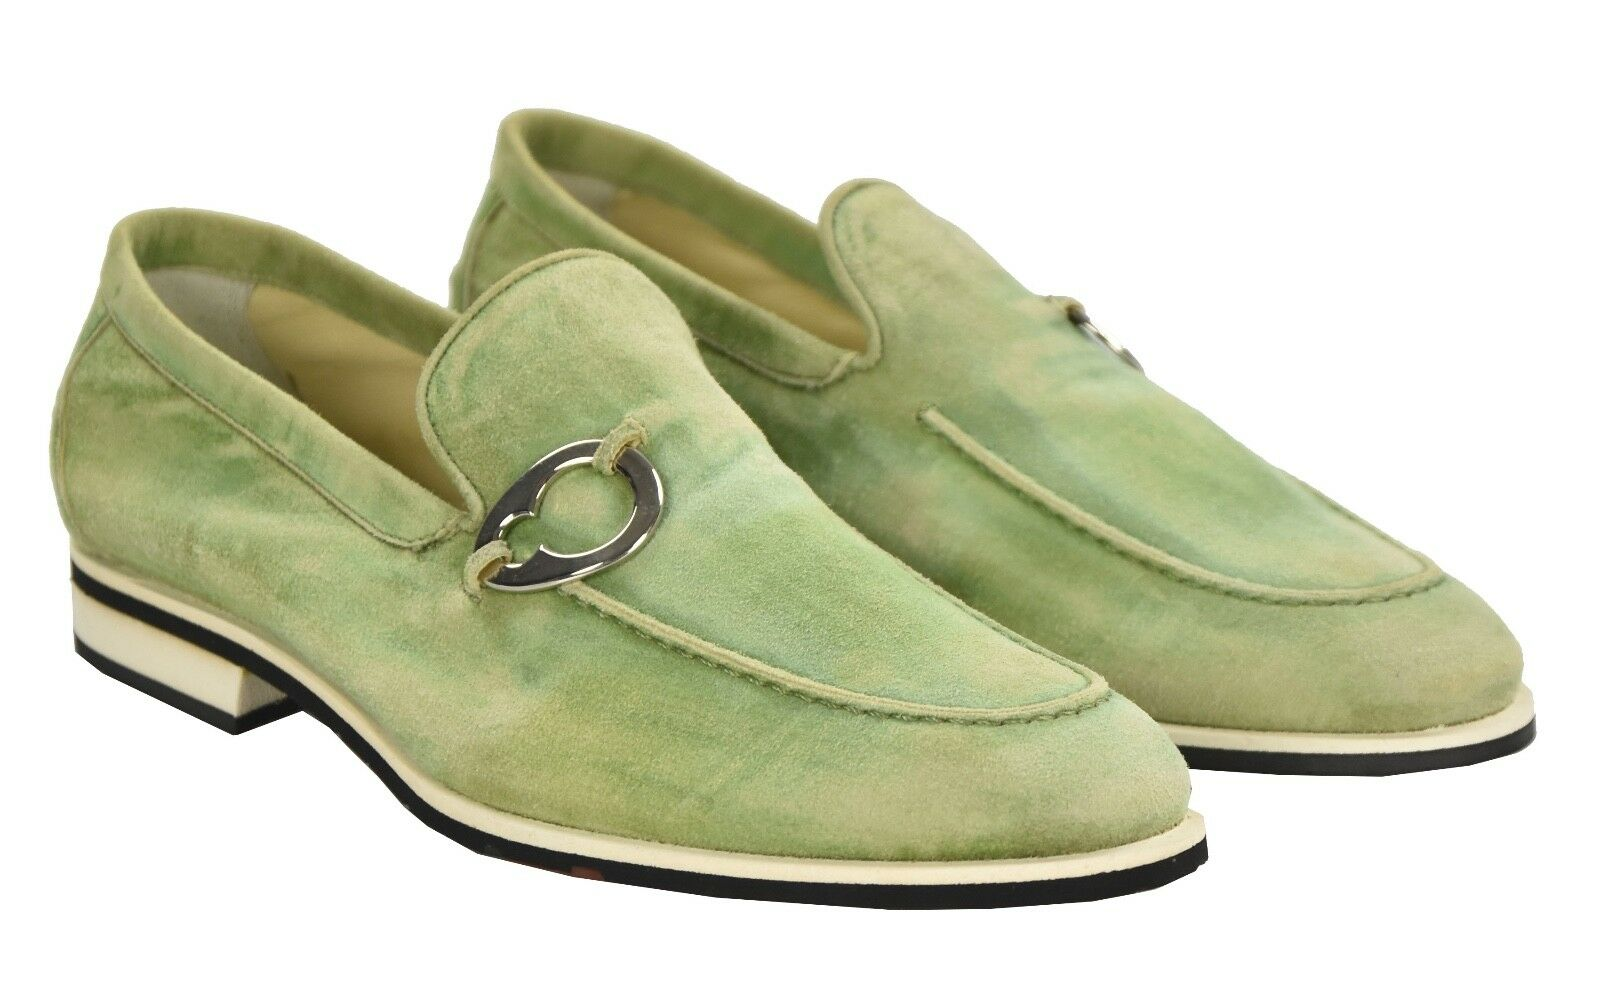 NEW KITON NAPOLI LOAFERS SHOES 100% LEATHER SUEDE SIZE 8 US 41 O74